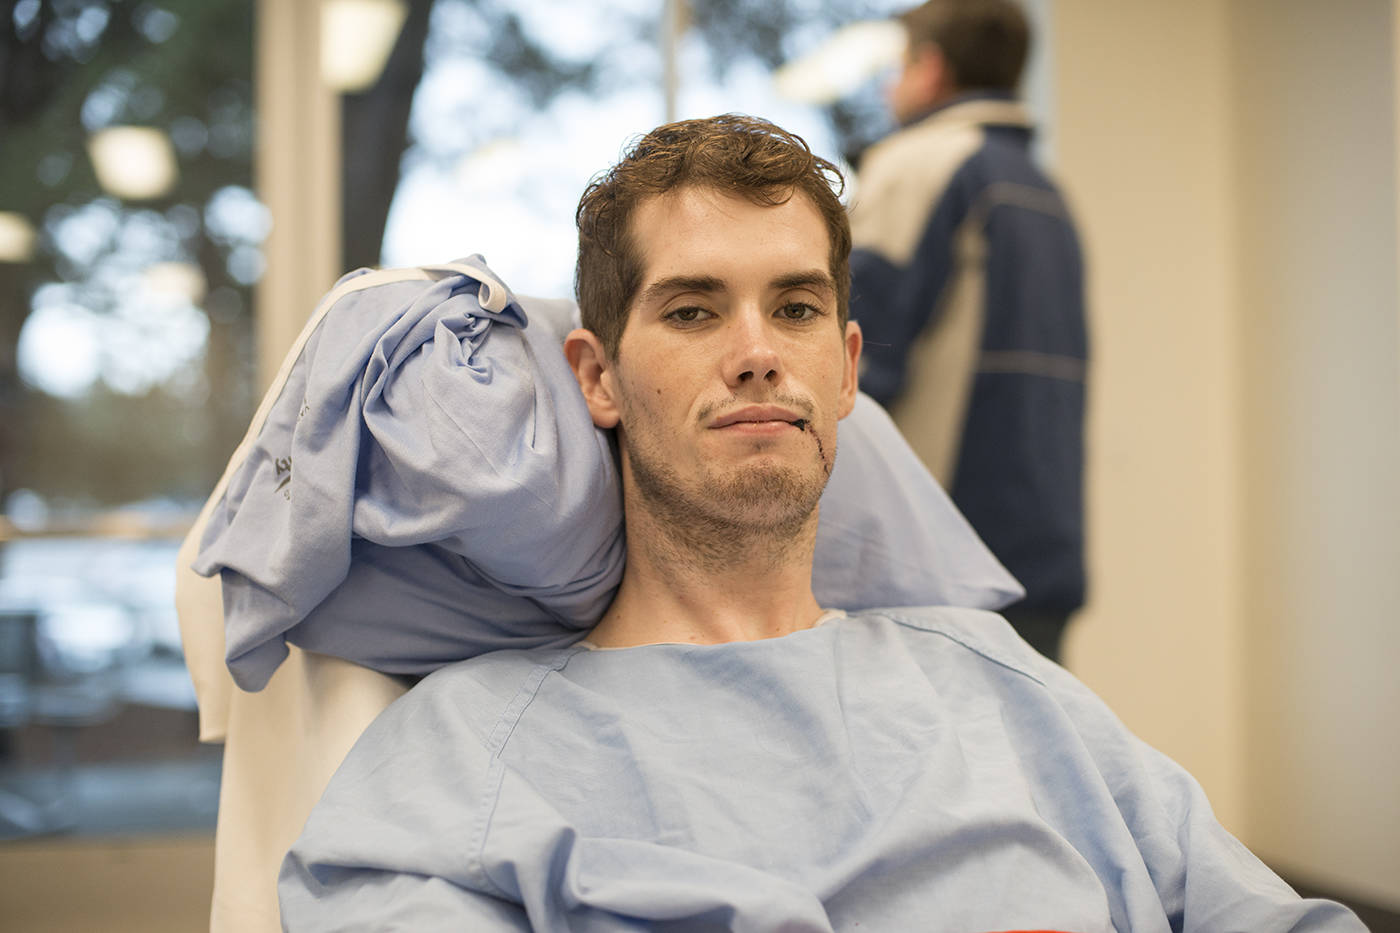 Duncan Moffat is recovering at Victoria General Hospital and is expected to be there through the holidays and into the new year for rehabilitation on his legs. (Keri Coles/News staff)